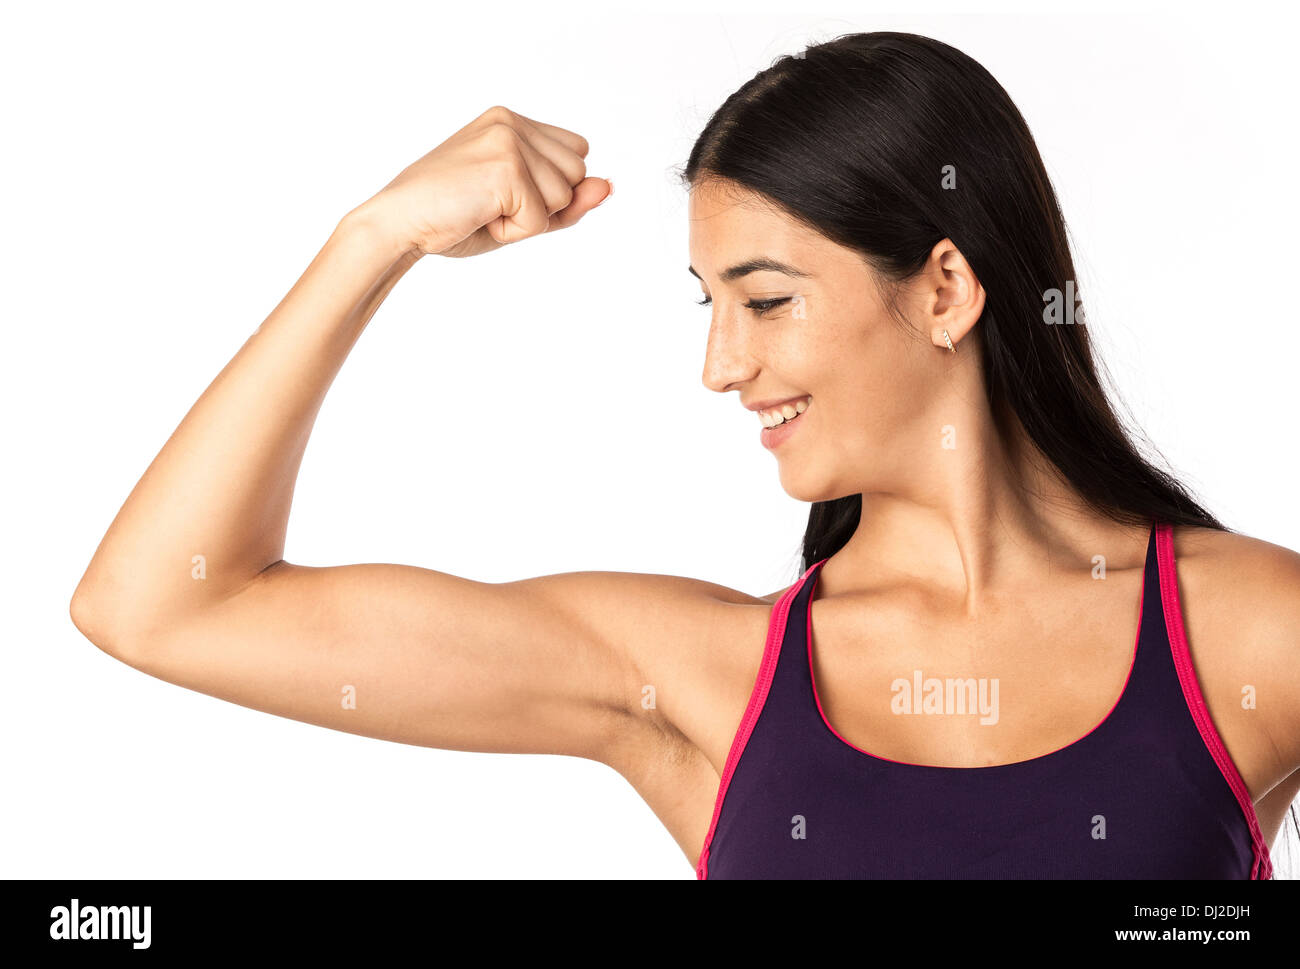 Cute Fitness Girl Flexing Bicep Over White